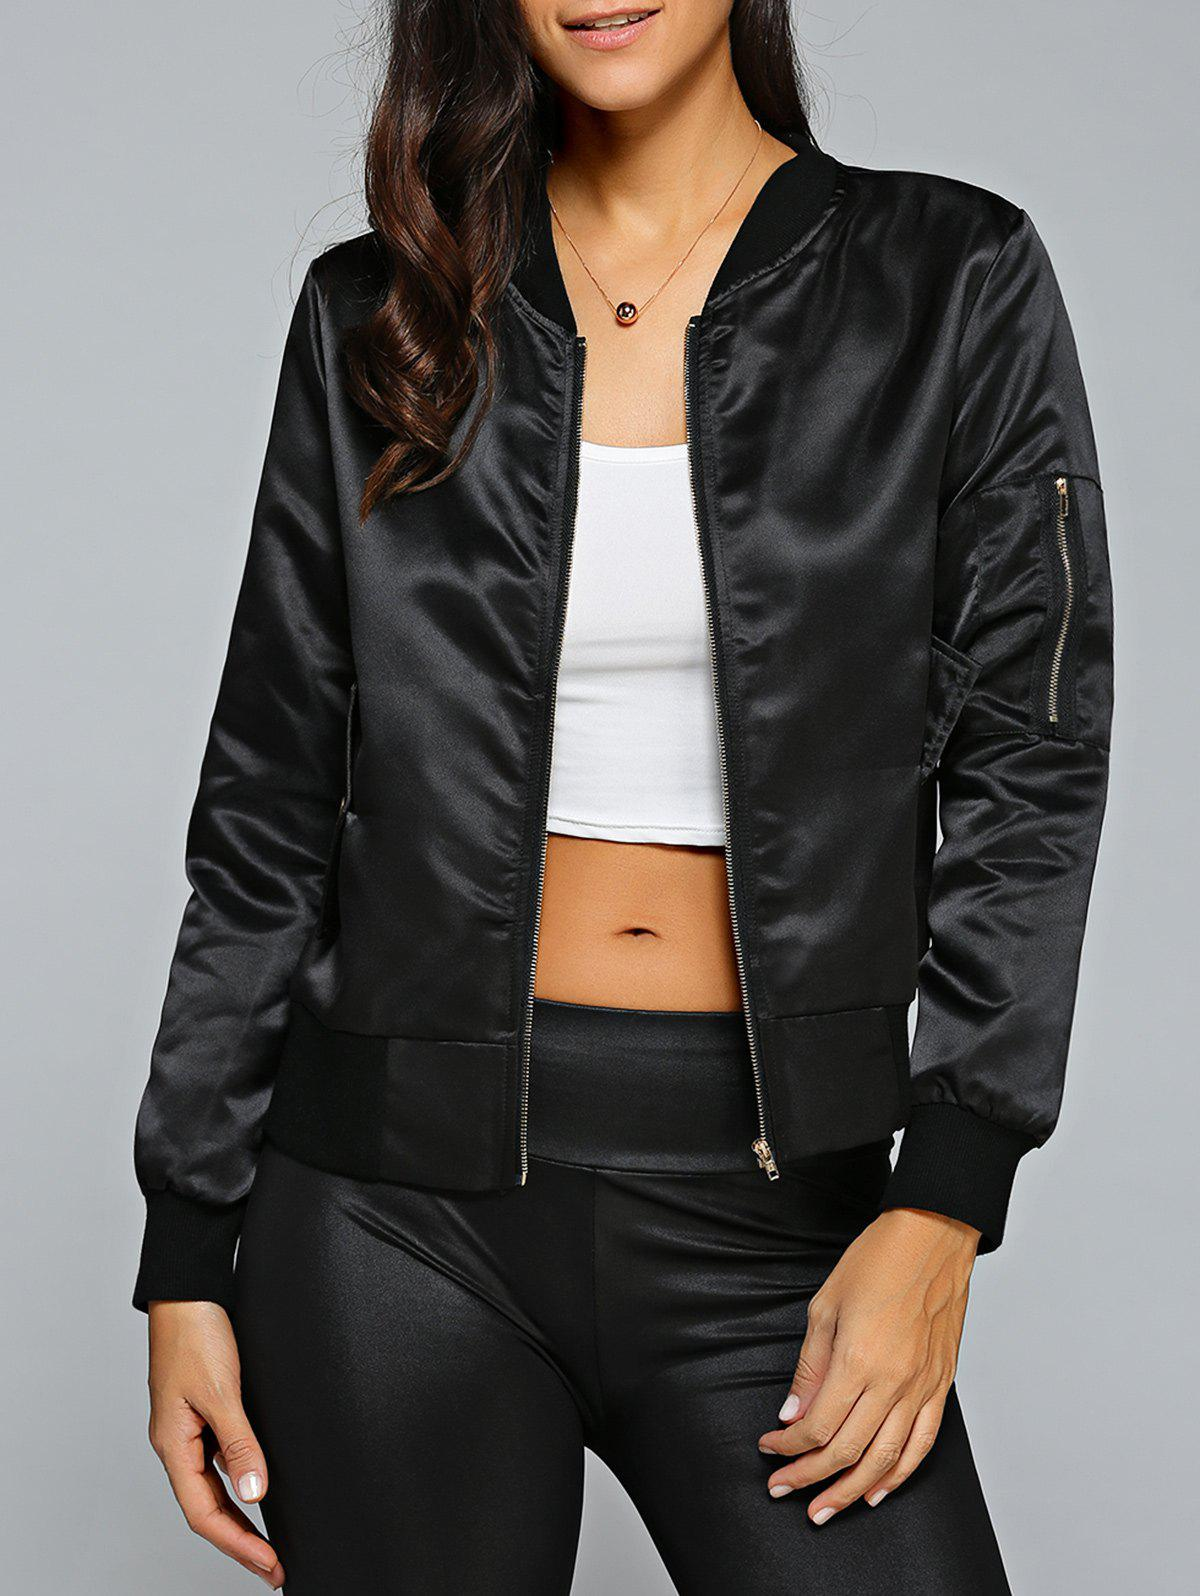 Satin Zip Up Bomber JacketWOMEN<br><br>Size: M; Color: BLACK; Clothes Type: Jackets; Material: Polyester; Type: Slim; Shirt Length: Regular; Sleeve Length: Full; Collar: Stand-Up Collar; Closure Type: Zipper; Pattern Type: Solid; Embellishment: Zippers; Style: Fashion; Season: Fall,Spring; Weight: 0.370kg; Package Contents: 1 x Jacket;